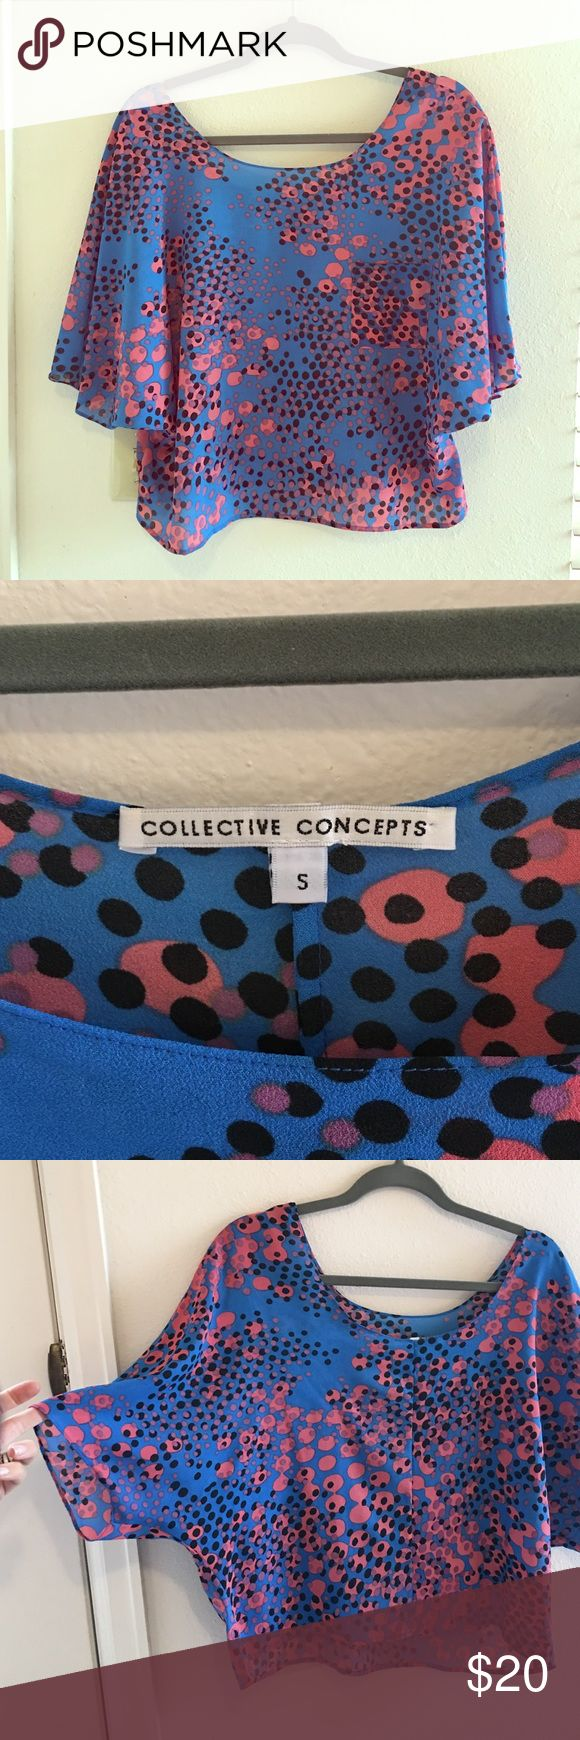 Collective Concepts blue batwing top Beautiful blue top from Collective Concepts. Excellent condition. Like new. Pink purple and black spots. Collective Concepts Tops Blouses